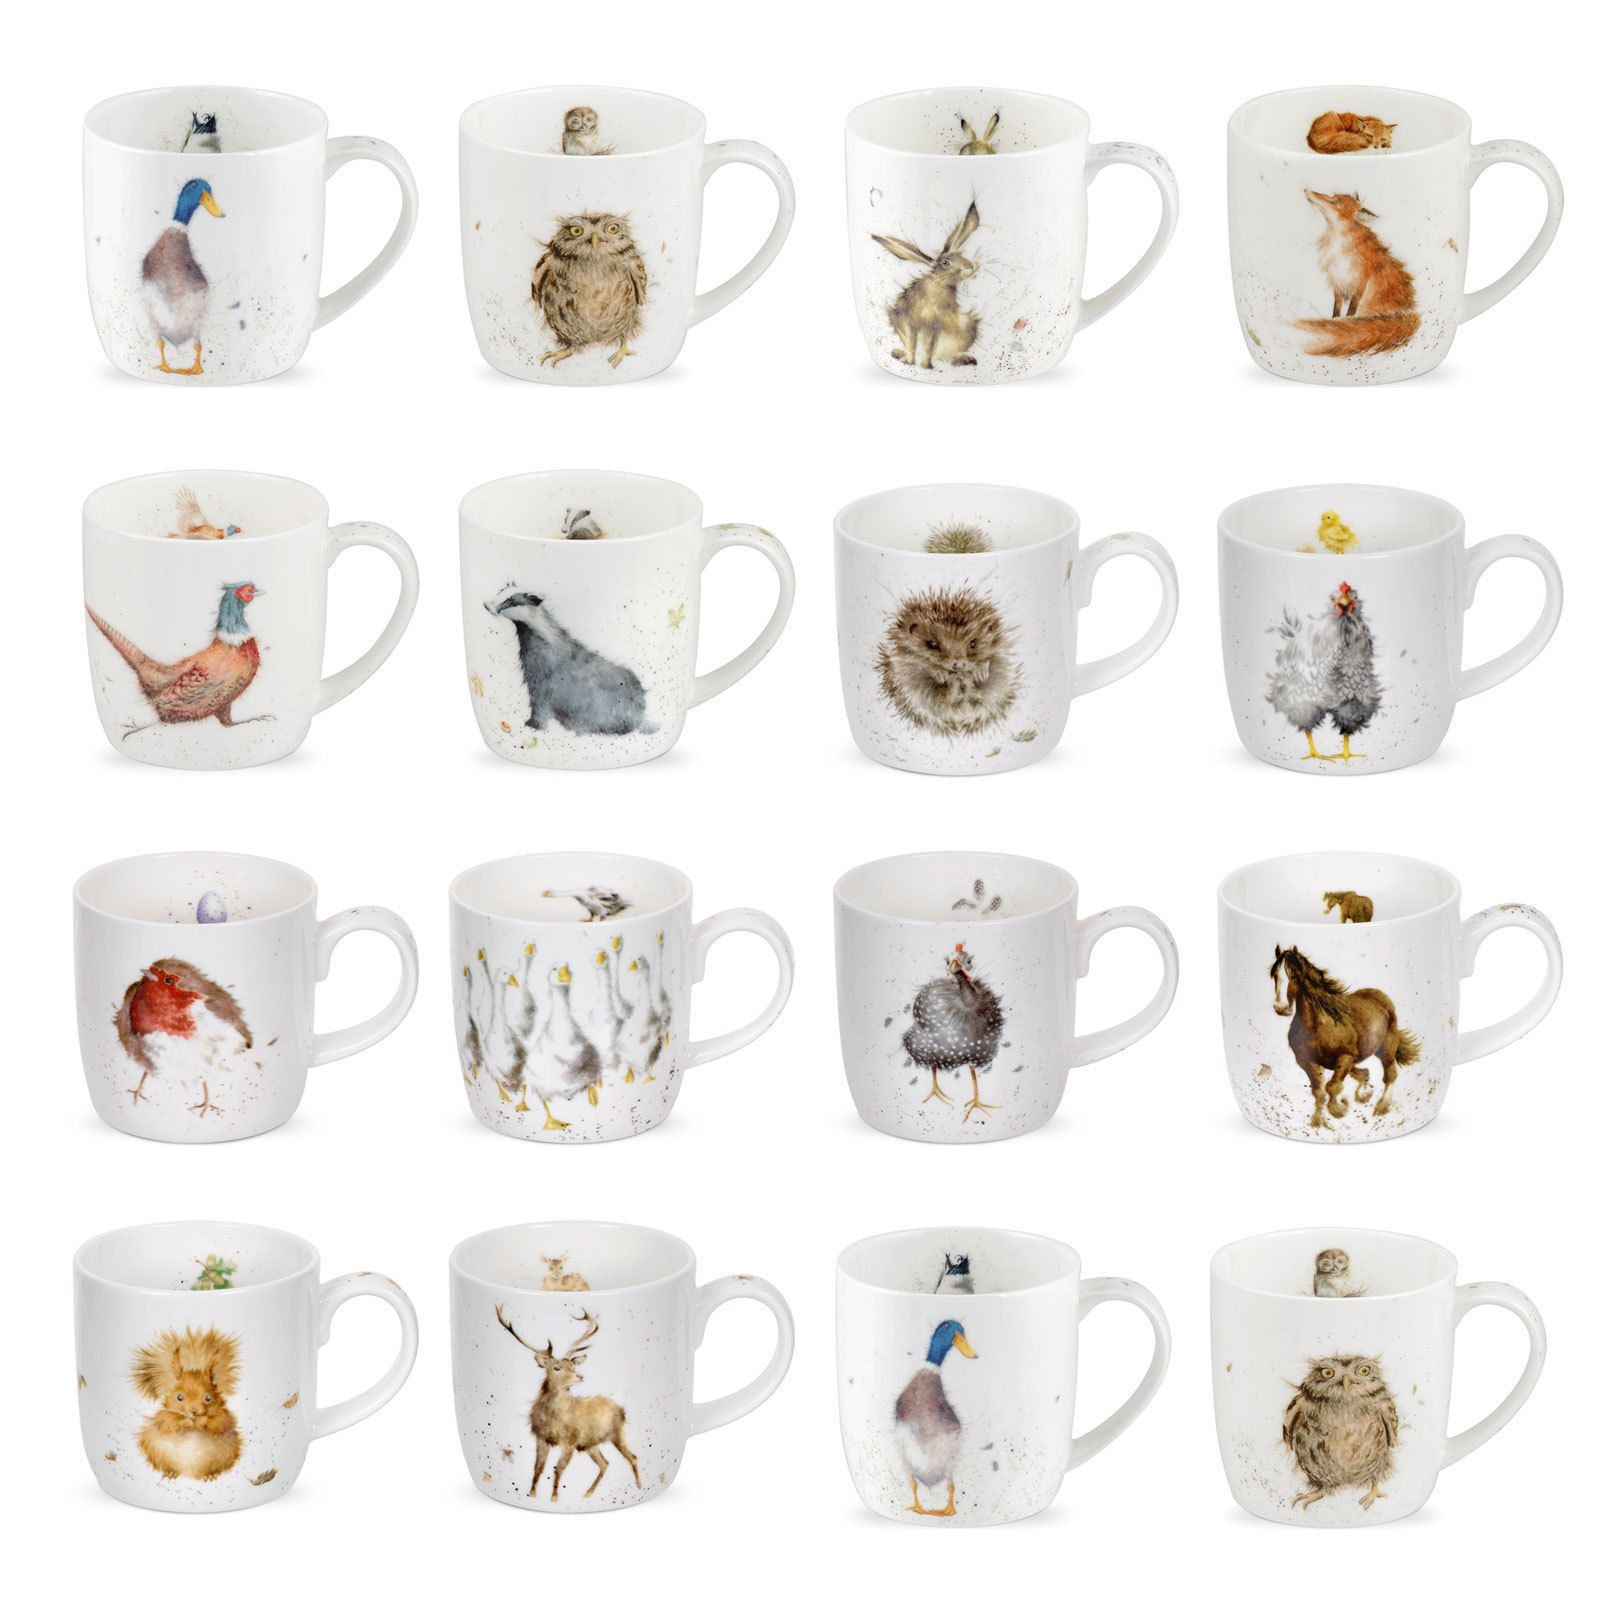 Animal Coffee Mug Wrendale Designs Countryside Animal Wild Animal Mugs